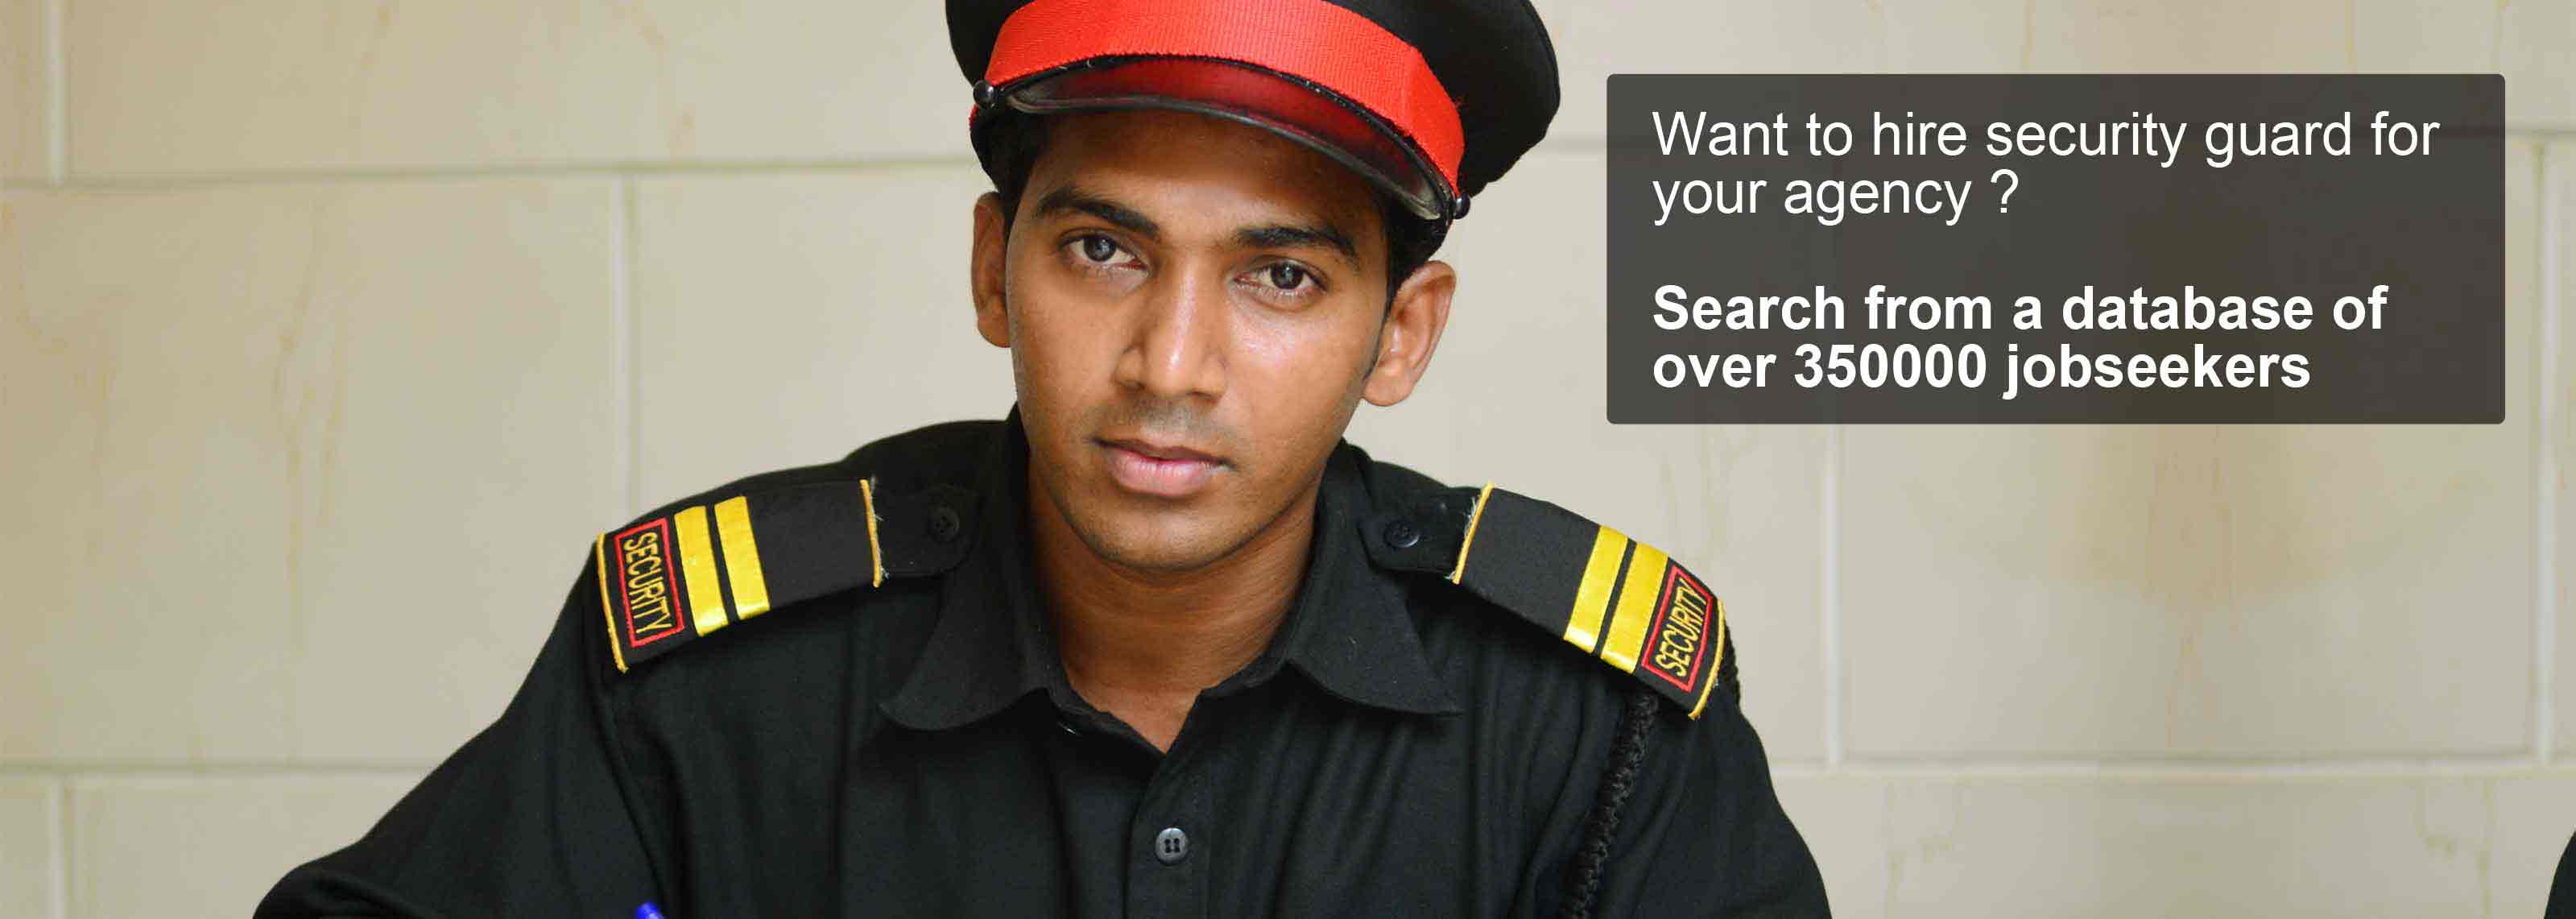 Want to hire security guard for your agency ? Search from a database of over 350000 jobseekers